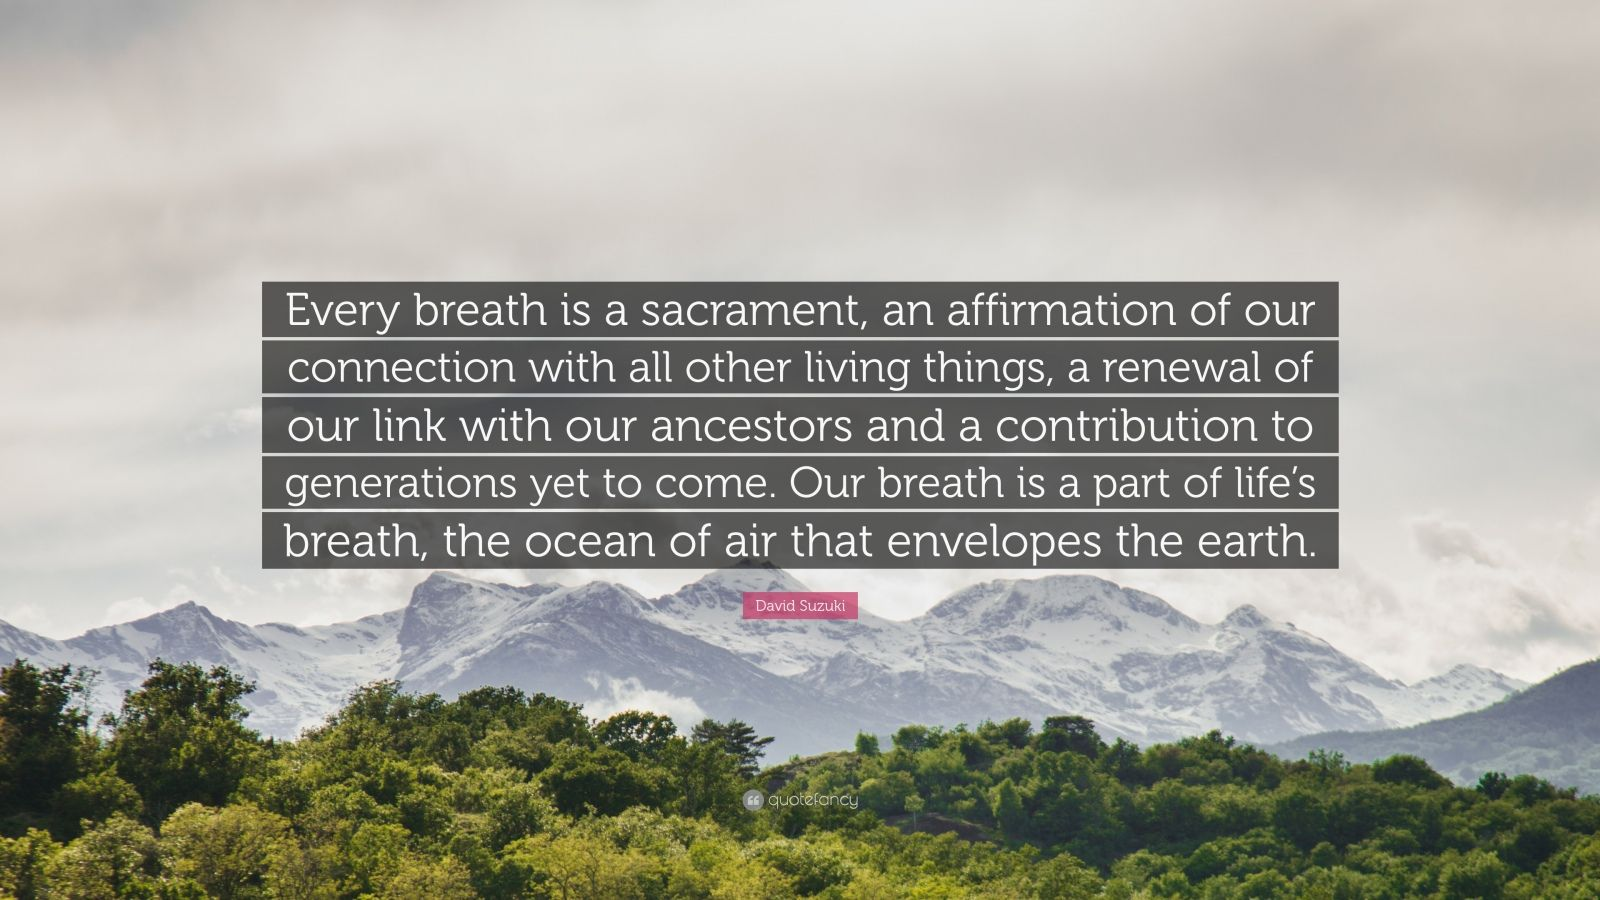 "David Suzuki Quote: ""Every breath is a sacrament, an affirmation of our connection with all other living things, a renewal of our link with our ancestors and a contribution to generations yet to come. Our breath is a part of life's breath, the ocean of air that envelopes the earth."""